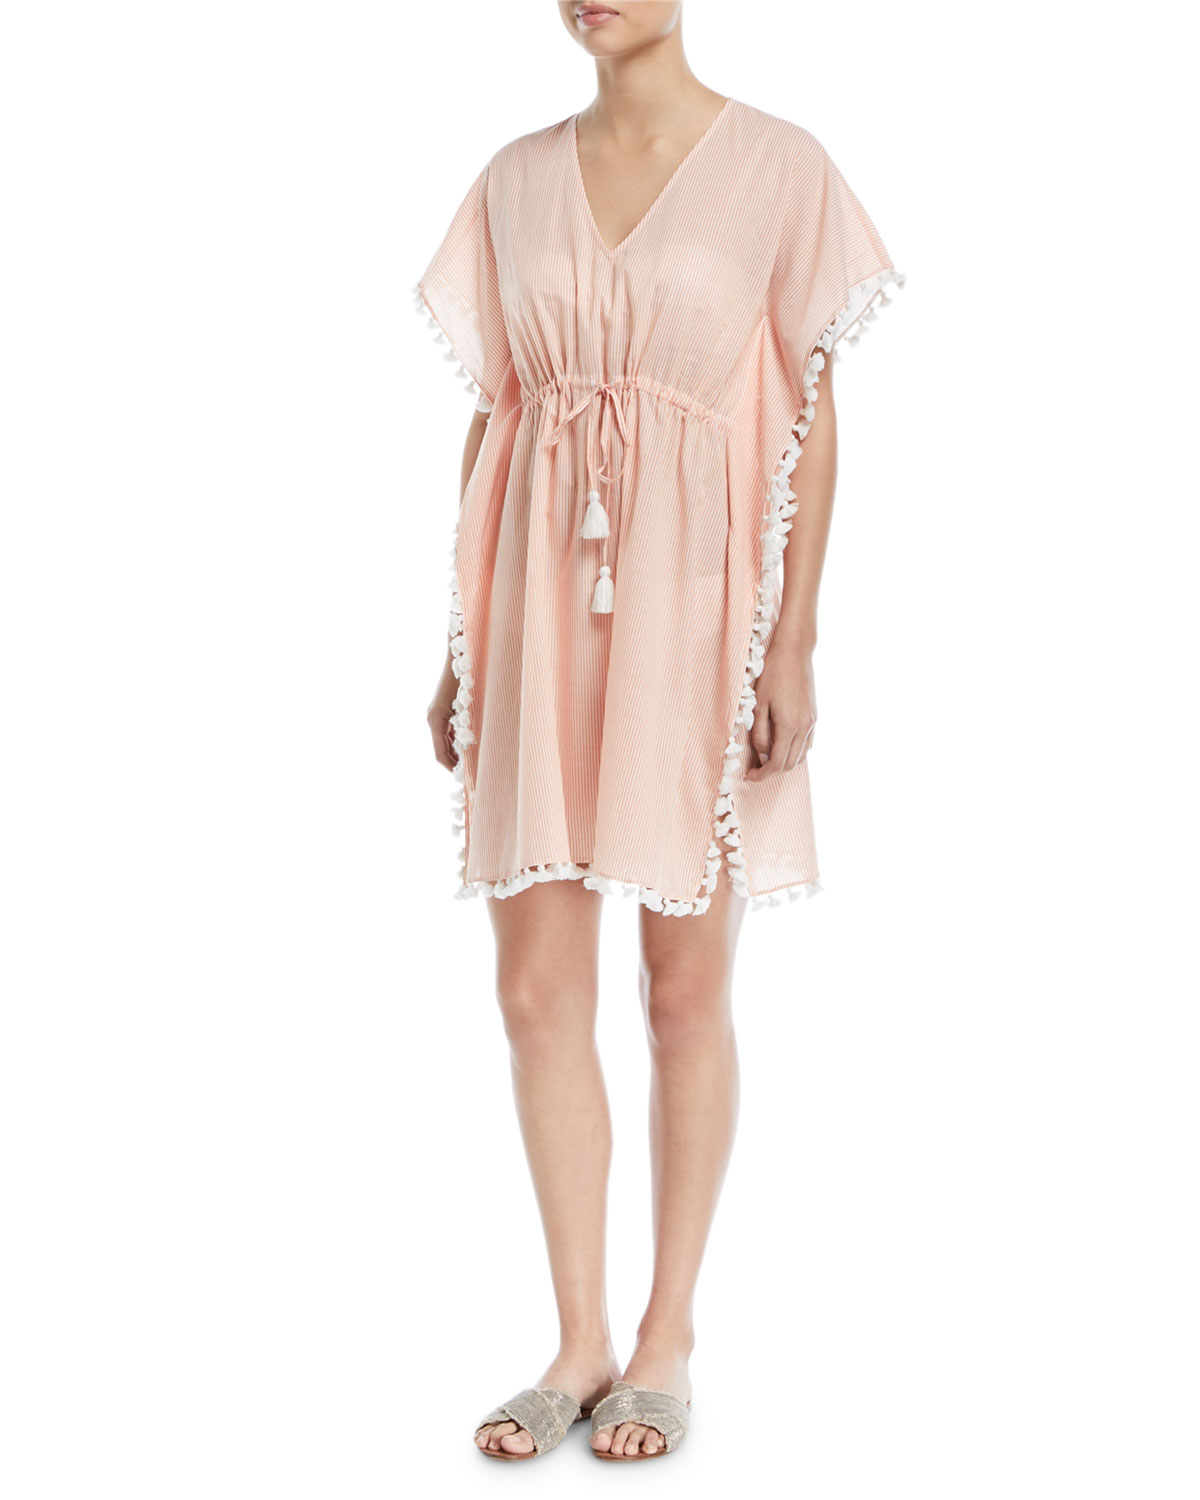 Ticking Stripe Caftan w/ Tassel Trim